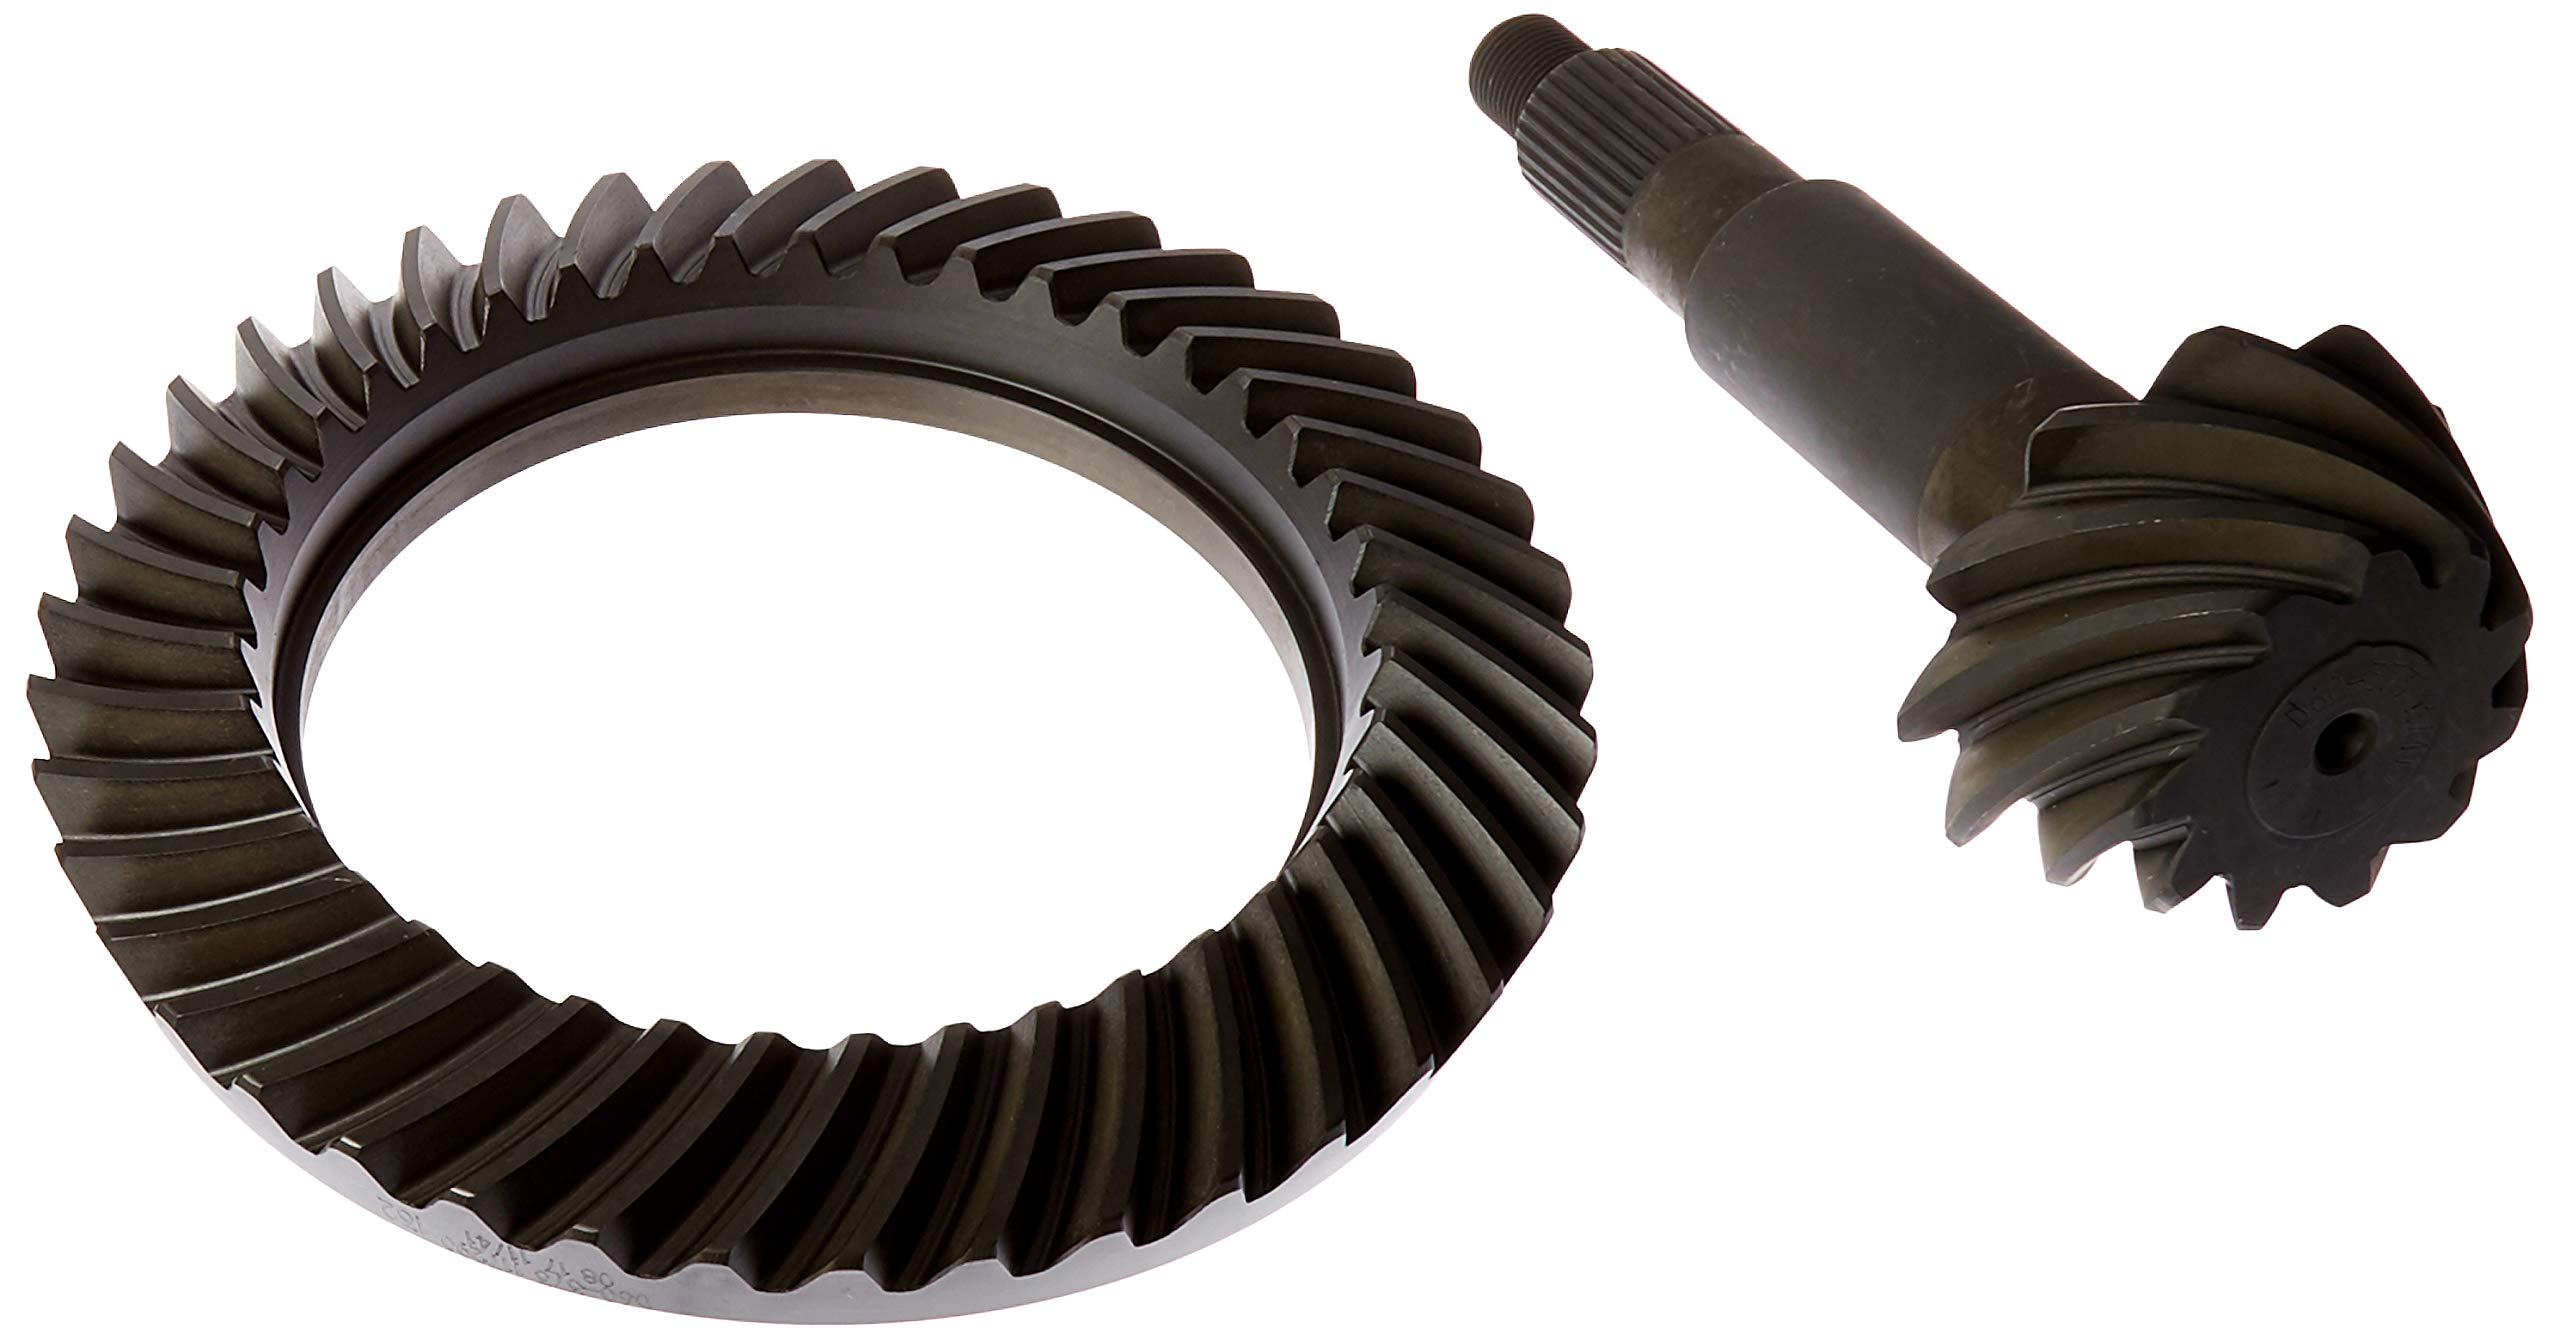 Motive Gear (D60-373) Performance Ring and Pinion Differential Set, Dana 60 Standard, 41-11 Teeth, 3.73 Ratio by Motive Gear